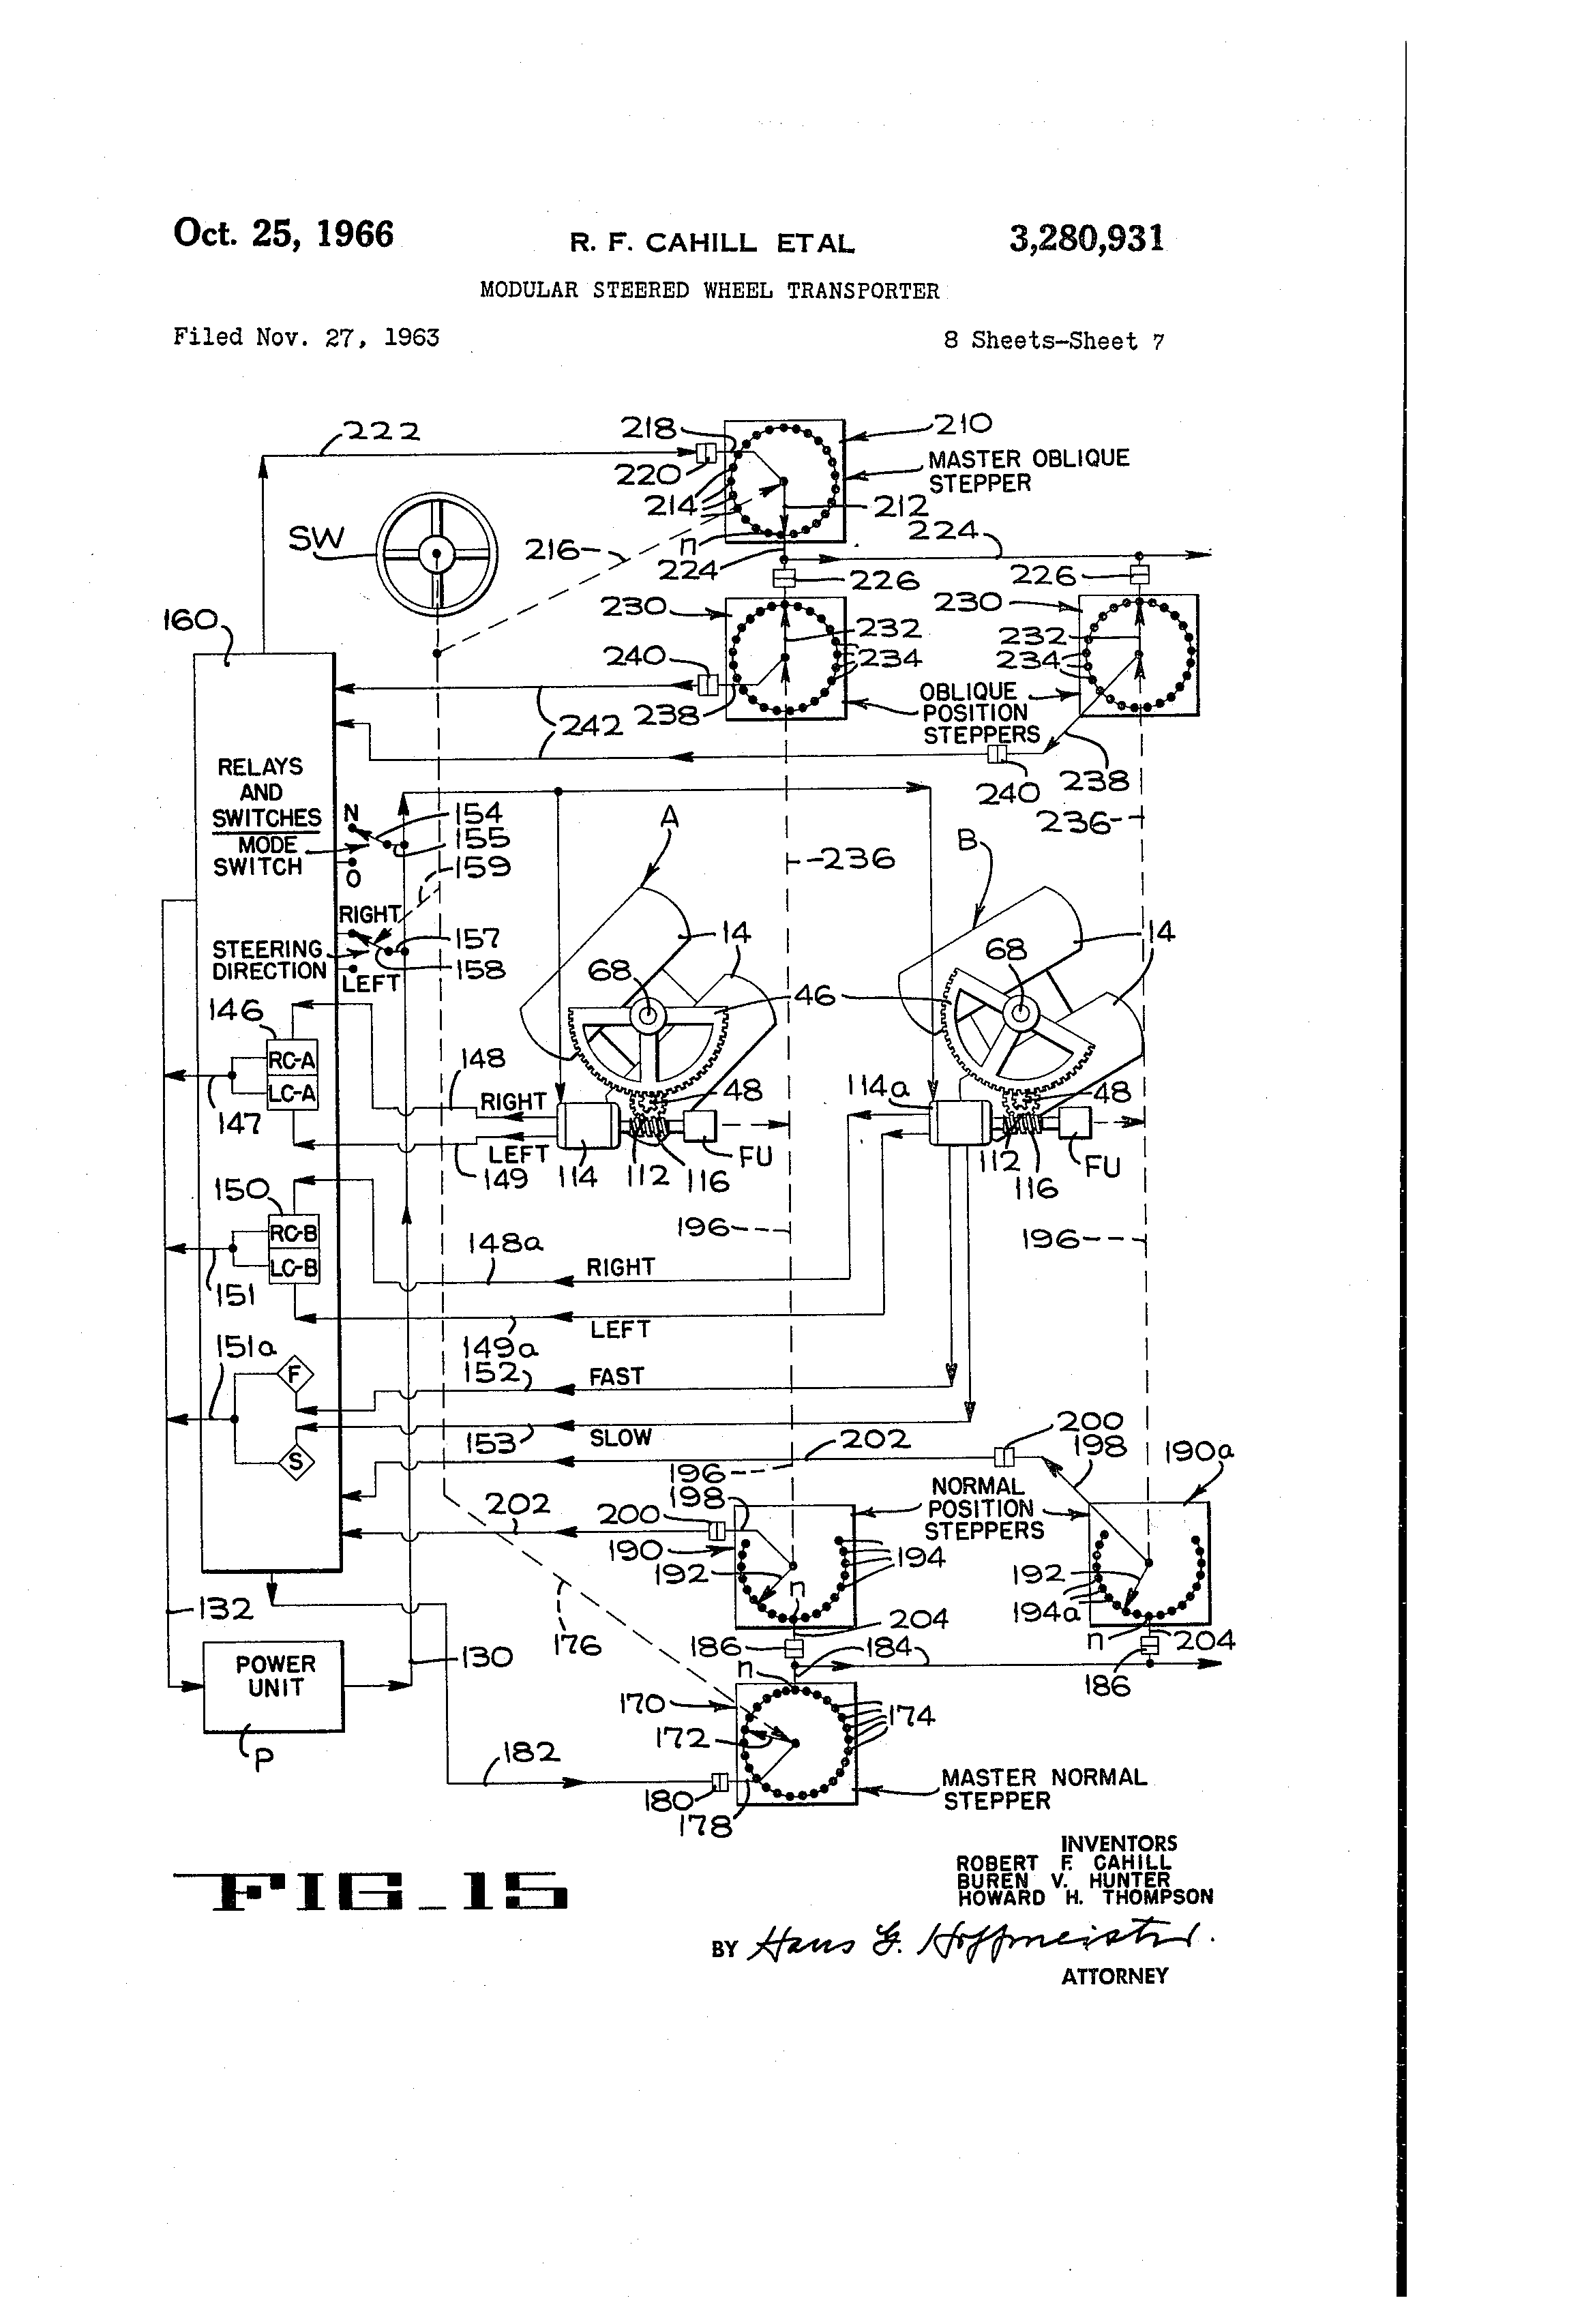 P H Crane Controller Wire Diagram | New Wiring Resources 2019 Imt Crane Wiring Diagram on